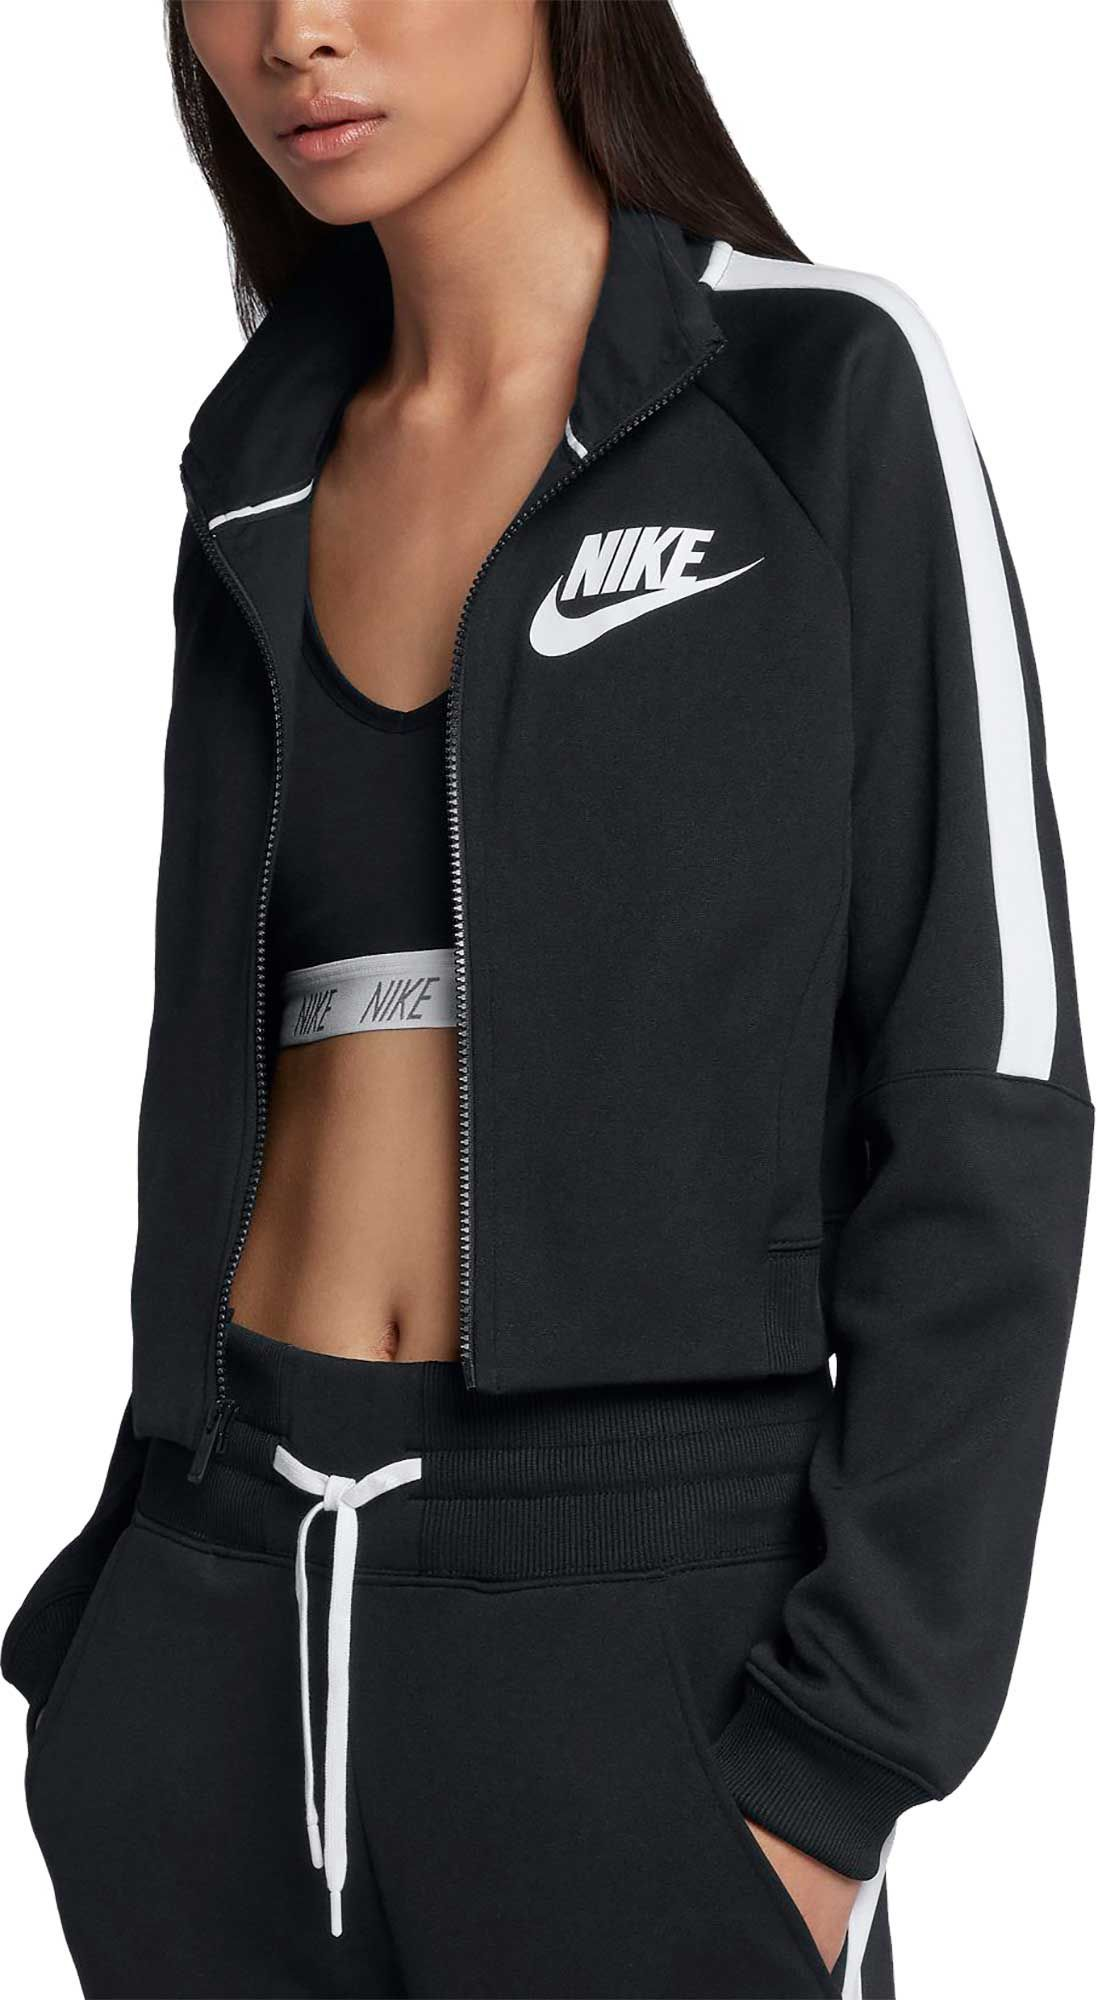 Nike Women's Sportswear N98 Cropped Track Jacket, Black in